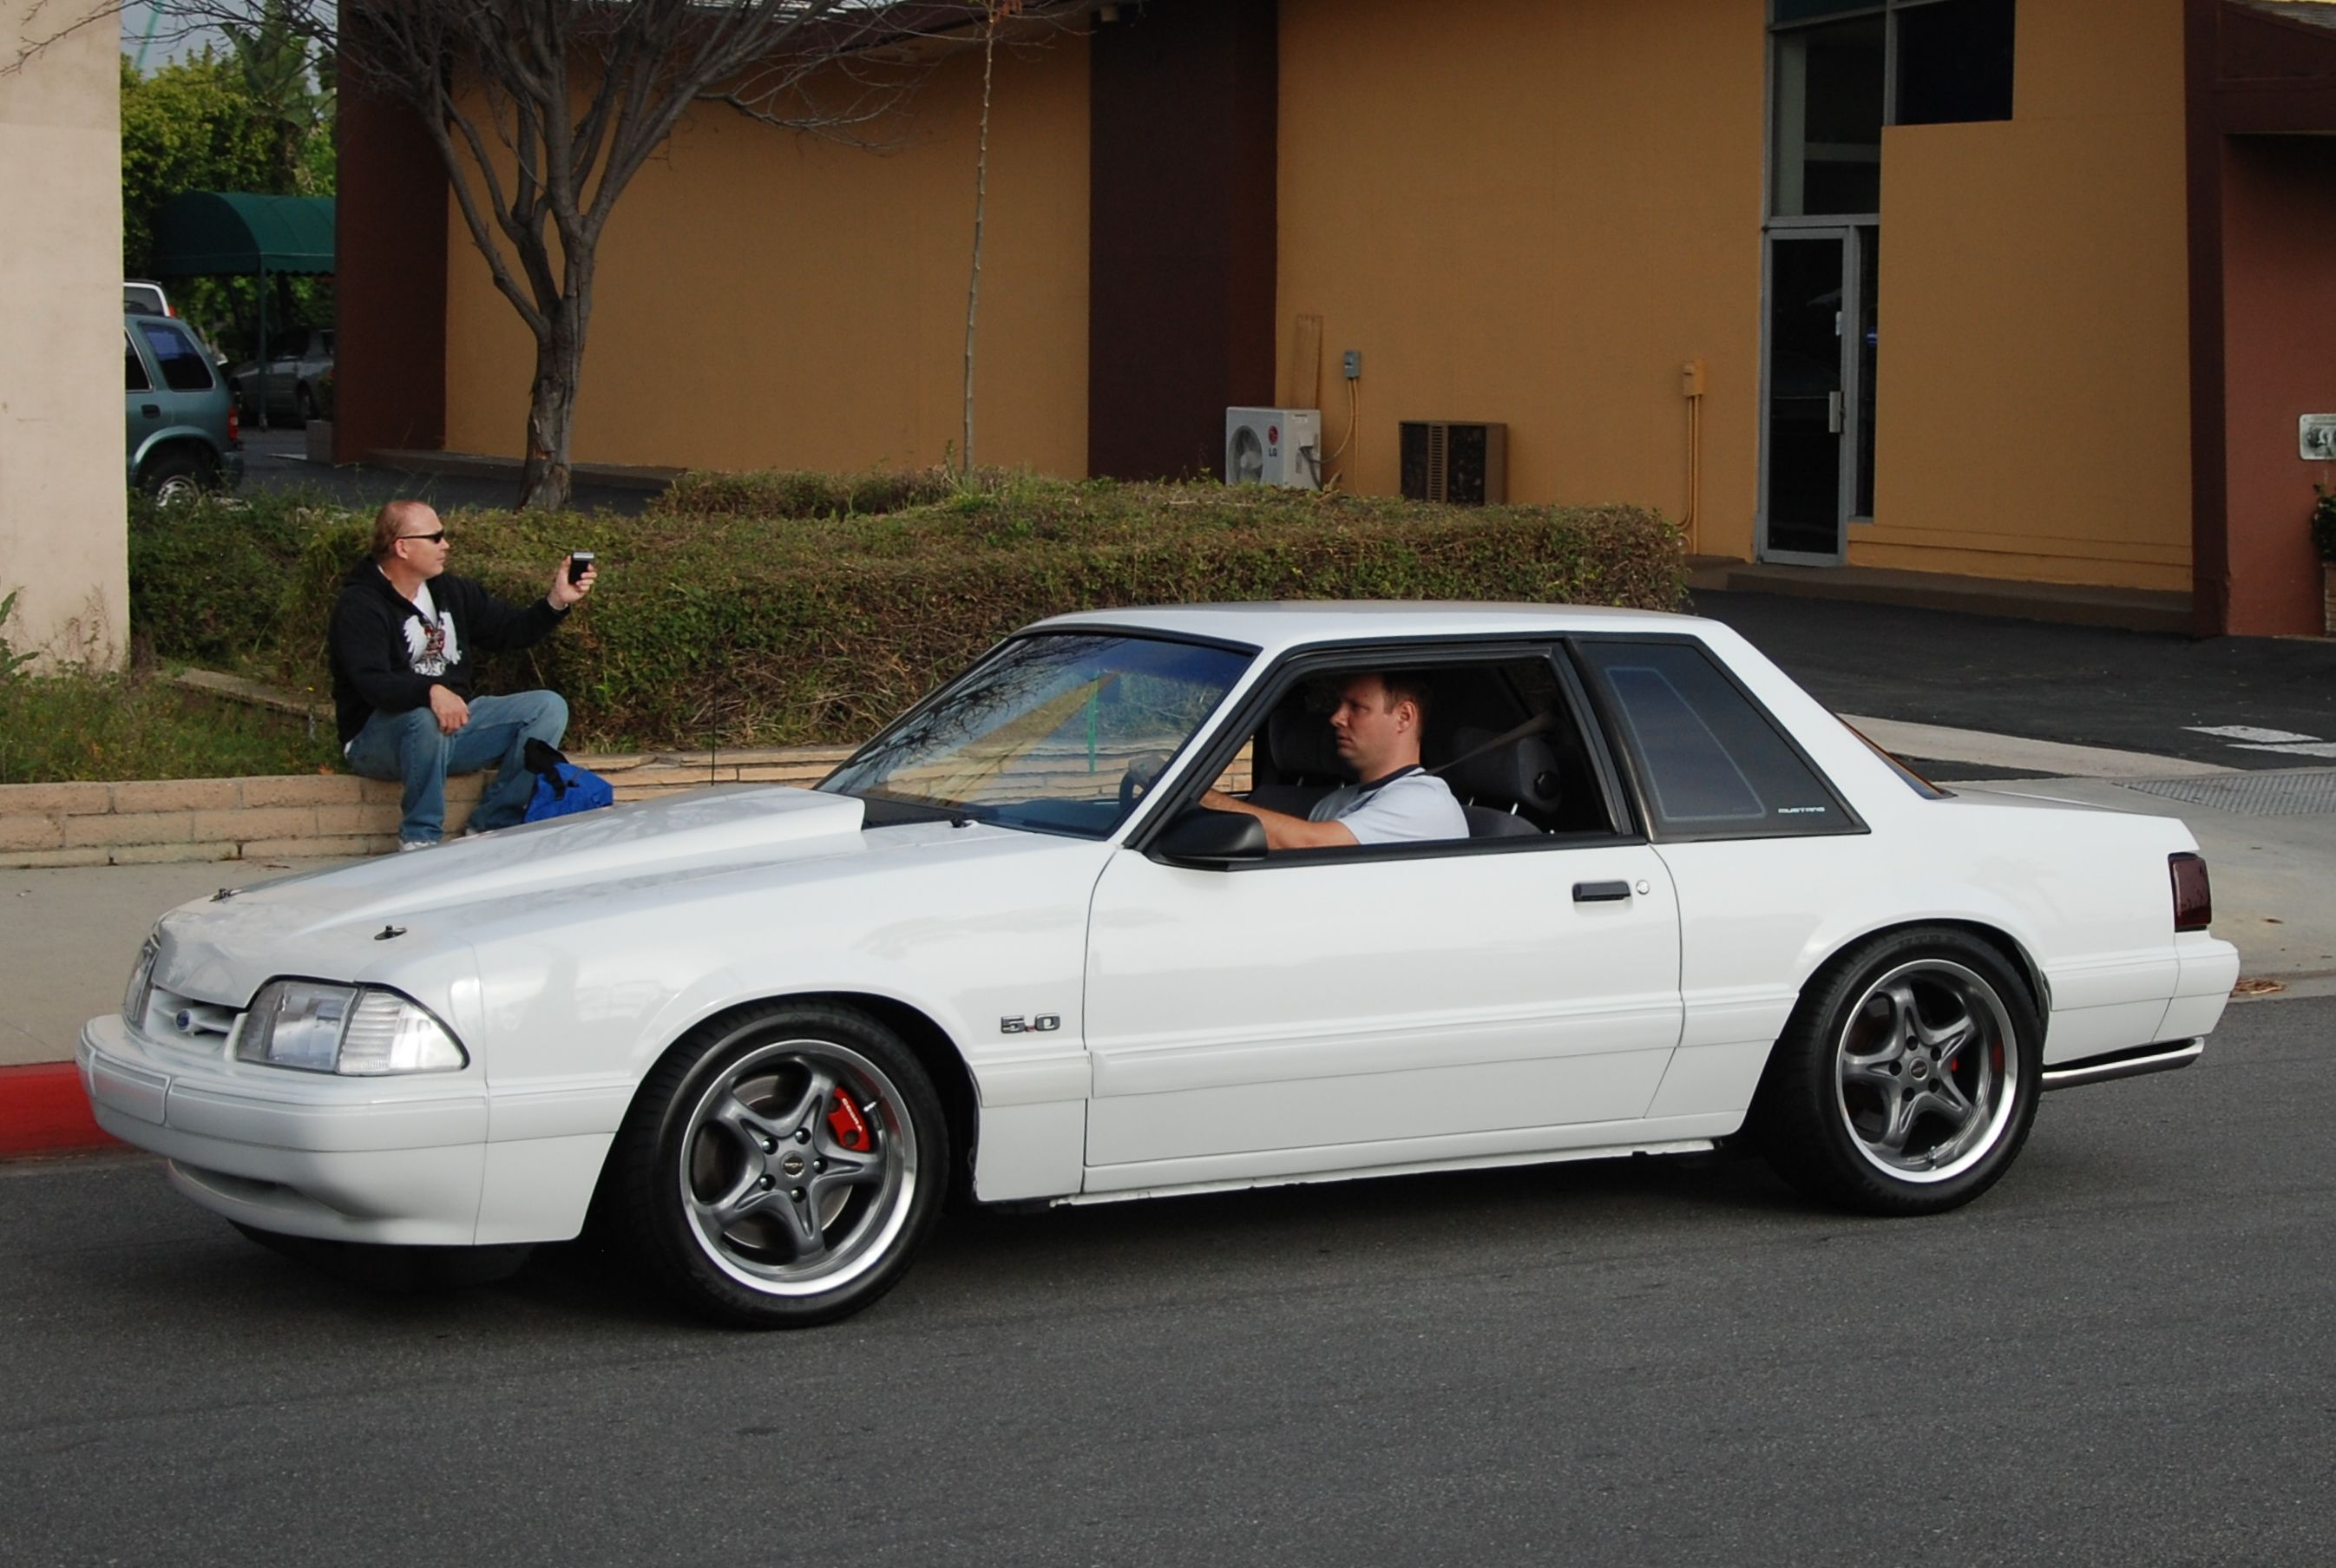 Ford mustang 5 0 lx foxbody coupe 5 0 fox mustangs mustang fox